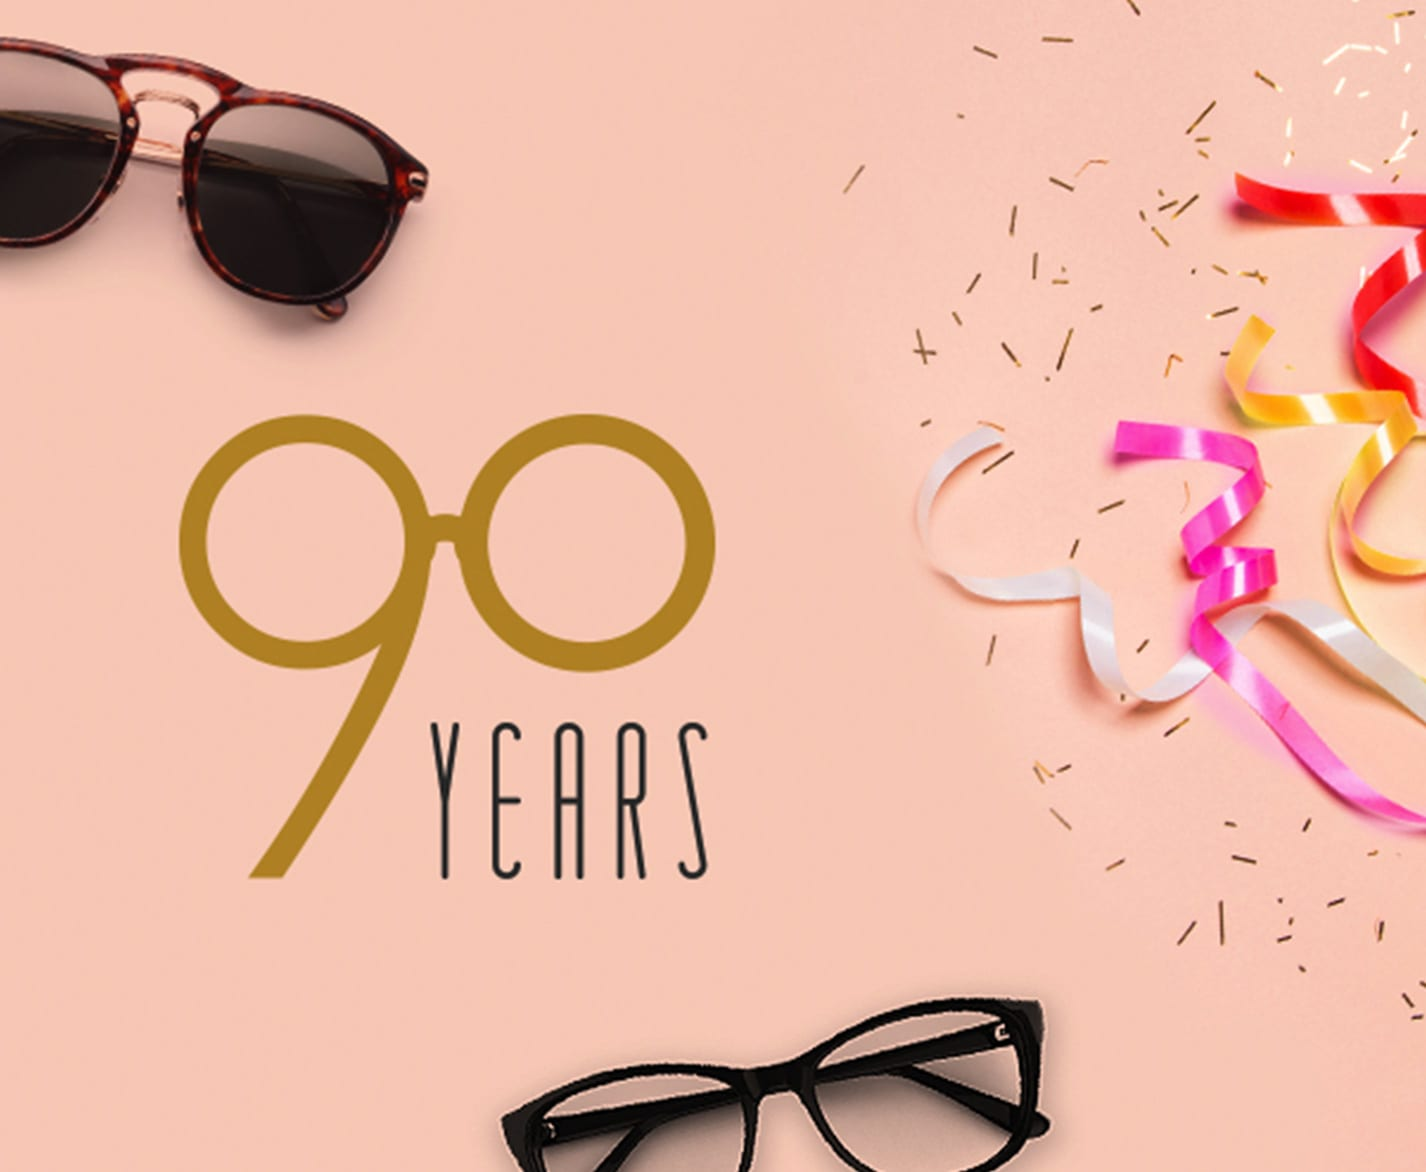 Celebrating 90 Years as Your Home for Healthy Eyes